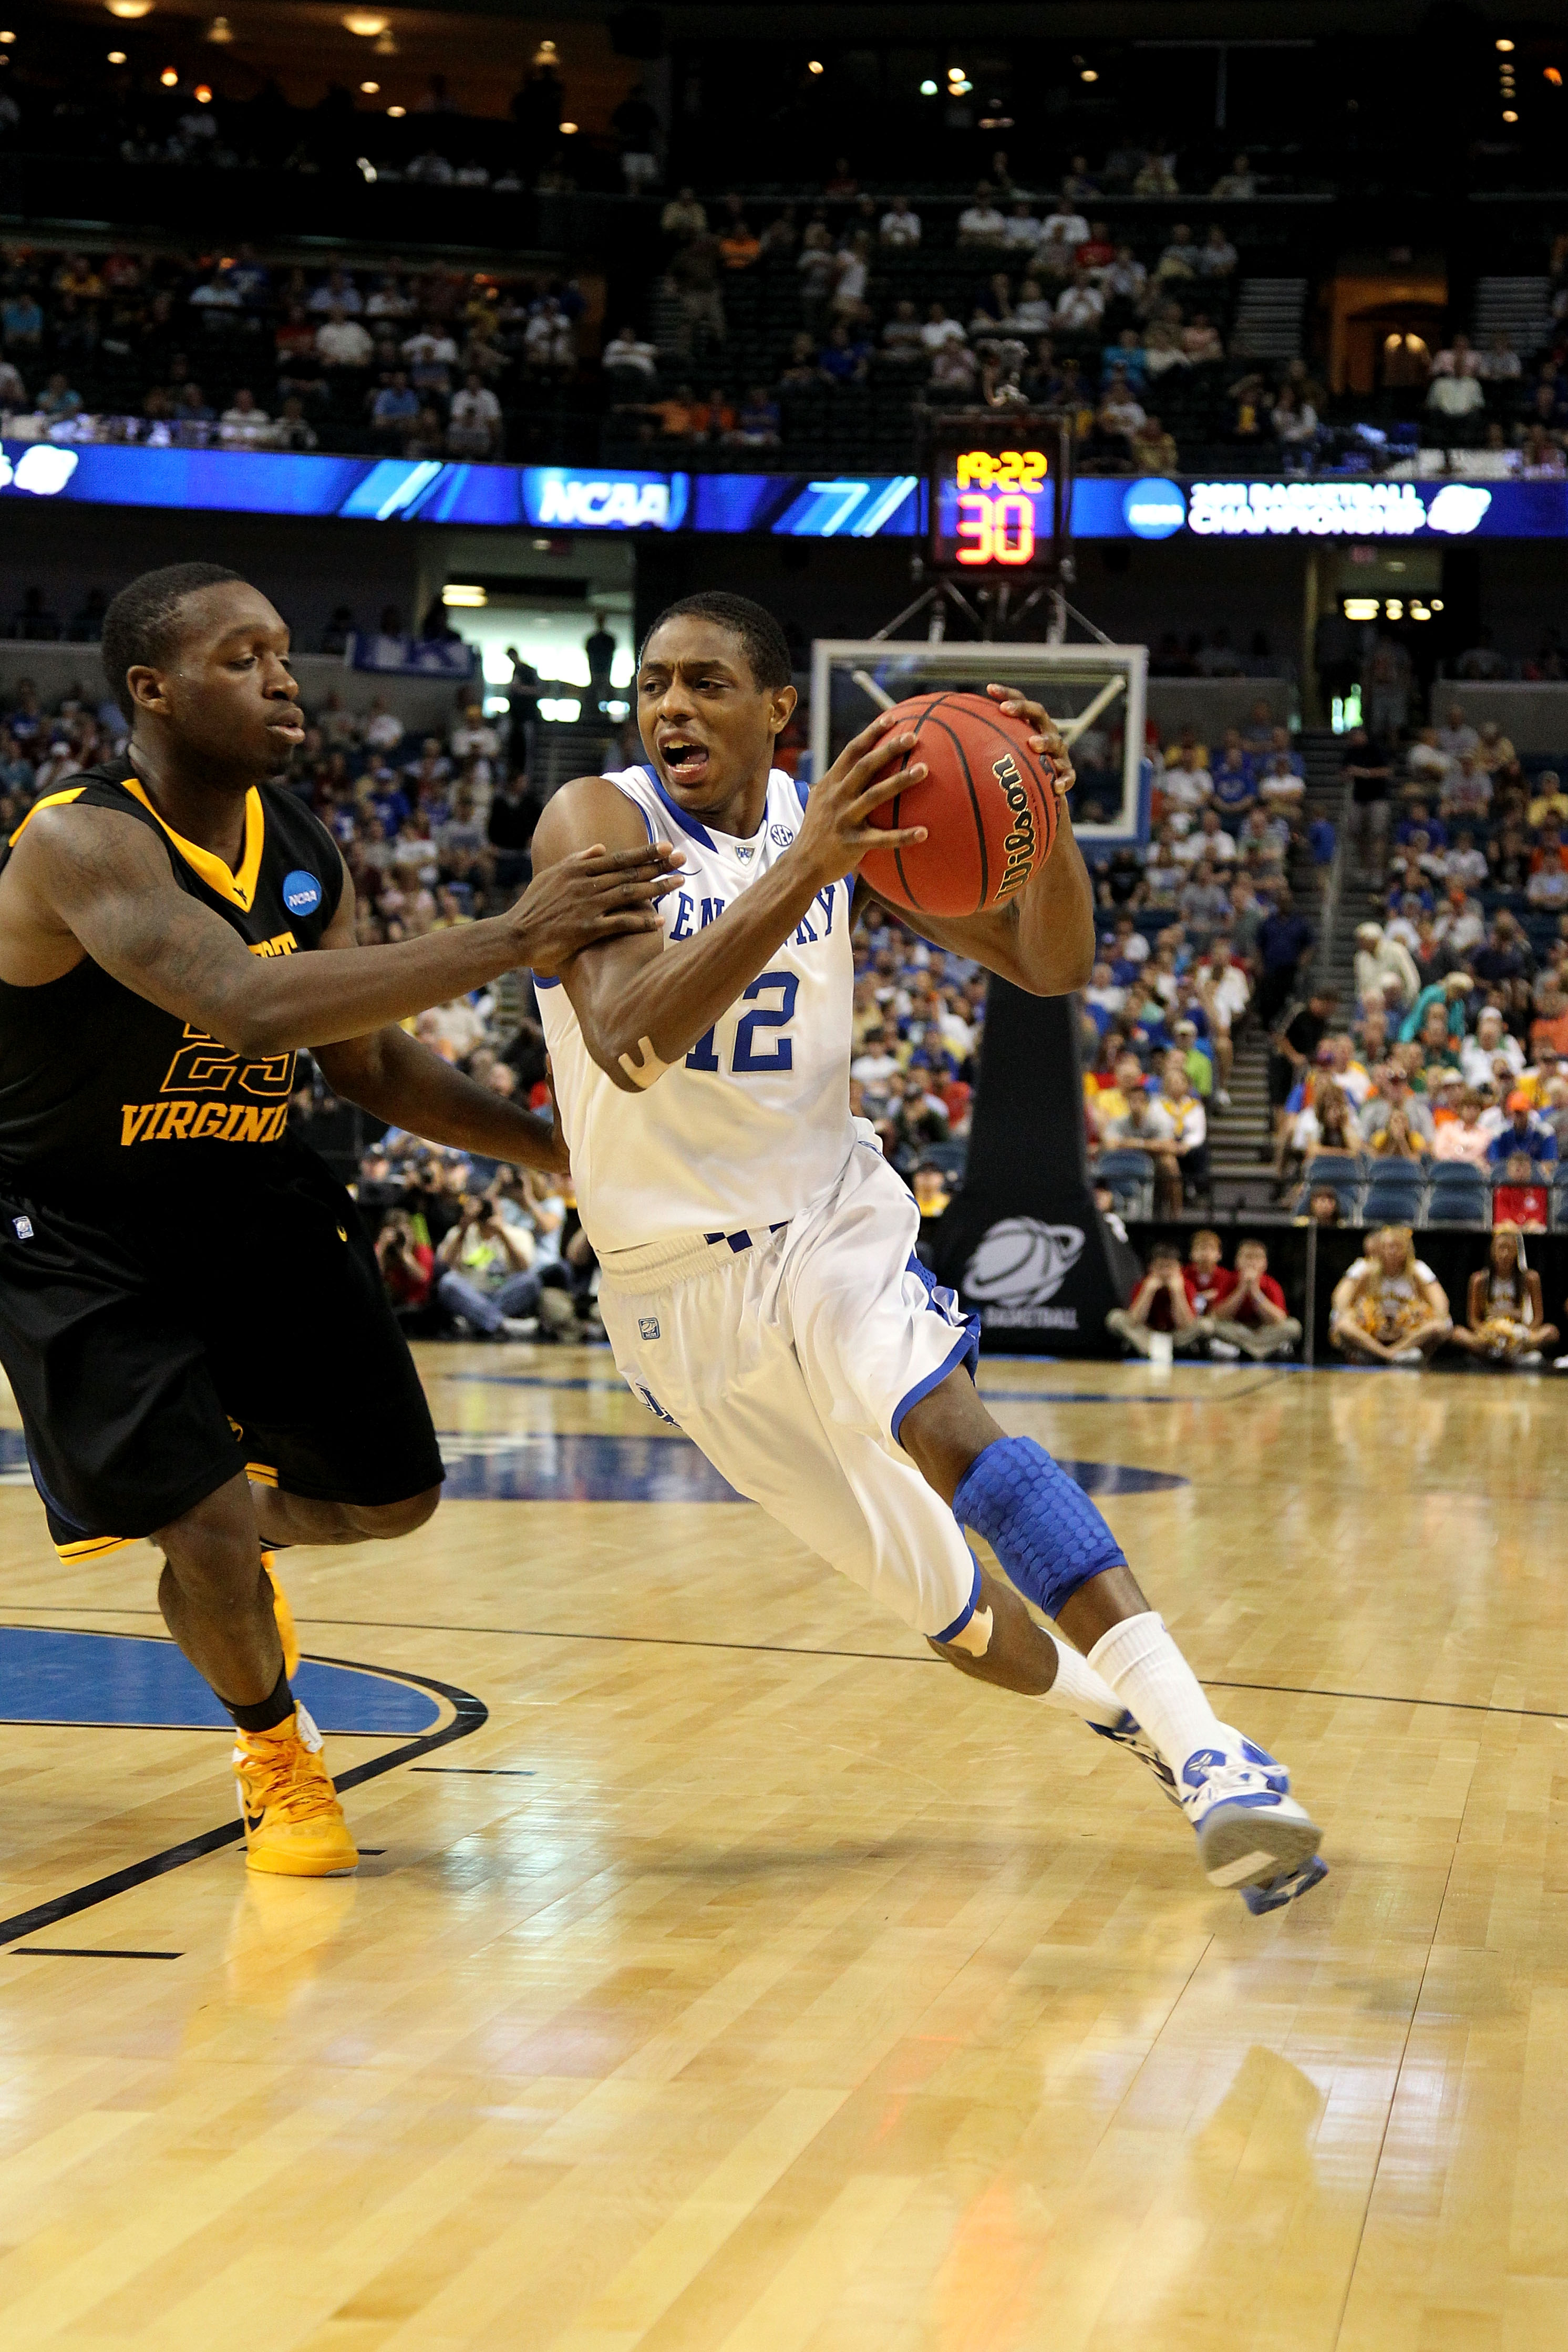 TAMPA, FL - MARCH 19:  Brandon Knight #12 of the Kentucky Wildcats drives against Darryl Bryant #25 of the West Virginia Mountaineers during the third round of the 2011 NCAA men's basketball tournament at St. Pete Times Forum on March 19, 2011 in Tampa, F